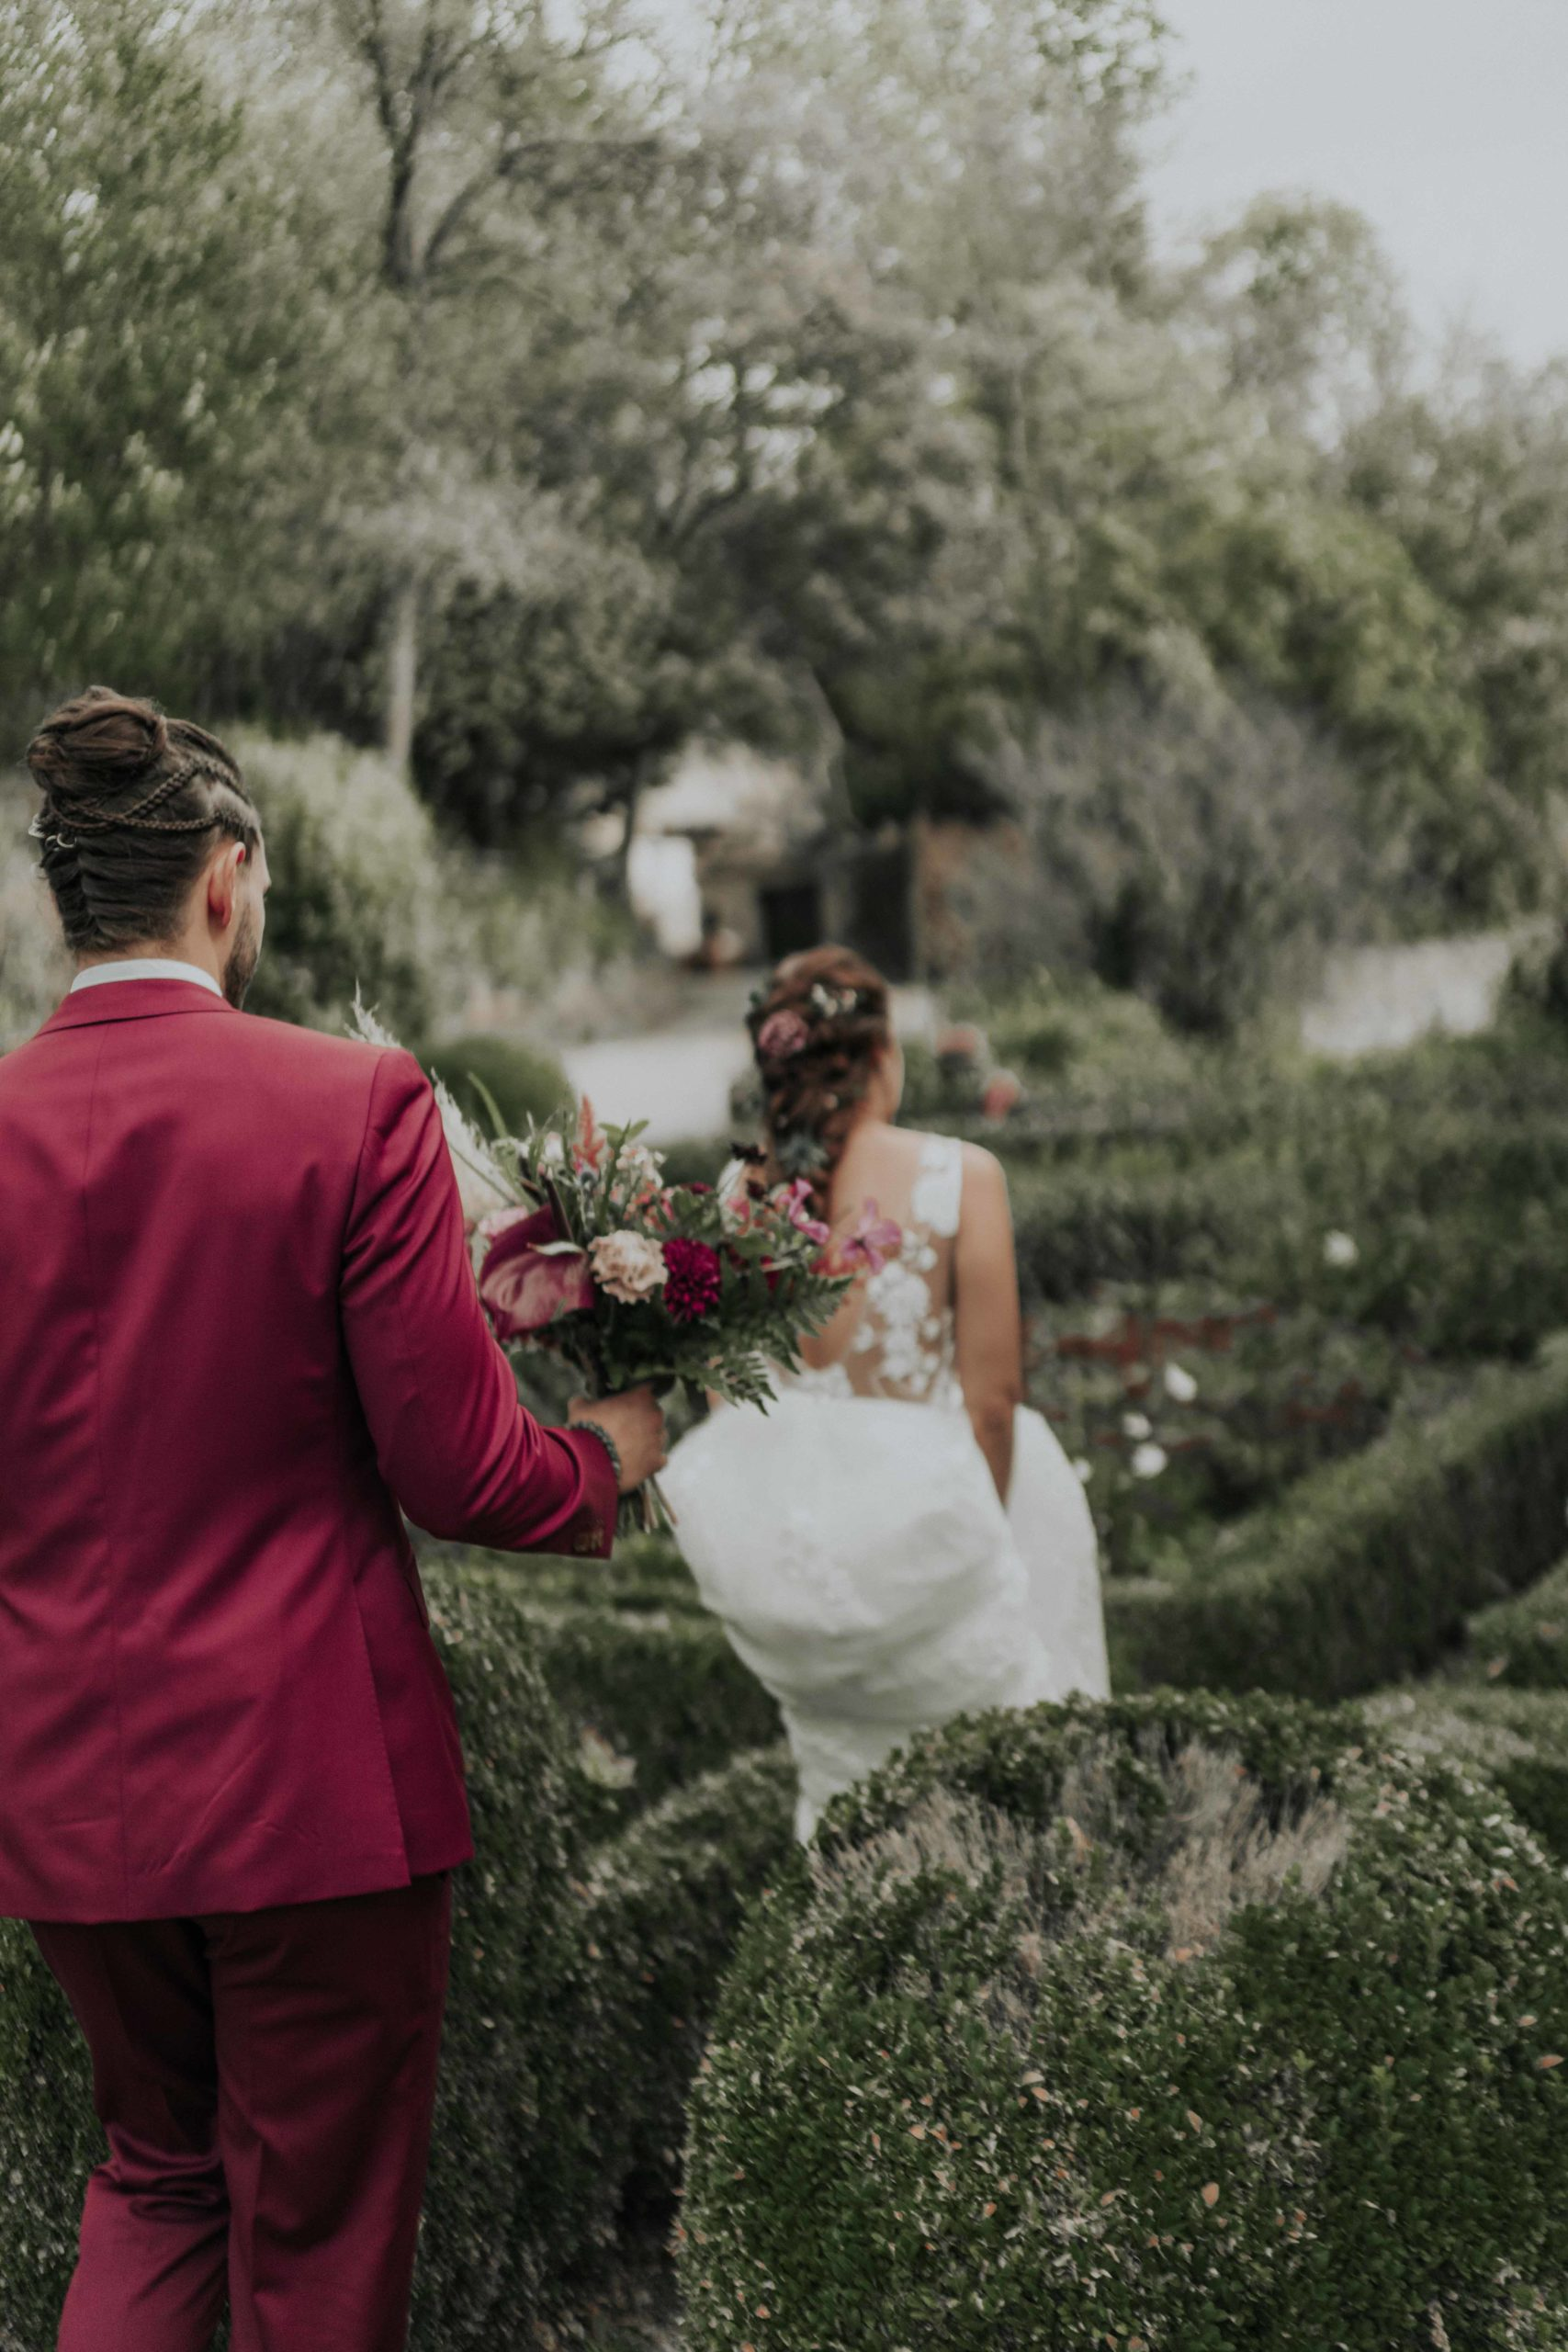 FOREVER_FANNY_MYARD_PHOTOGRAPHY_LN_MARIAGE-257